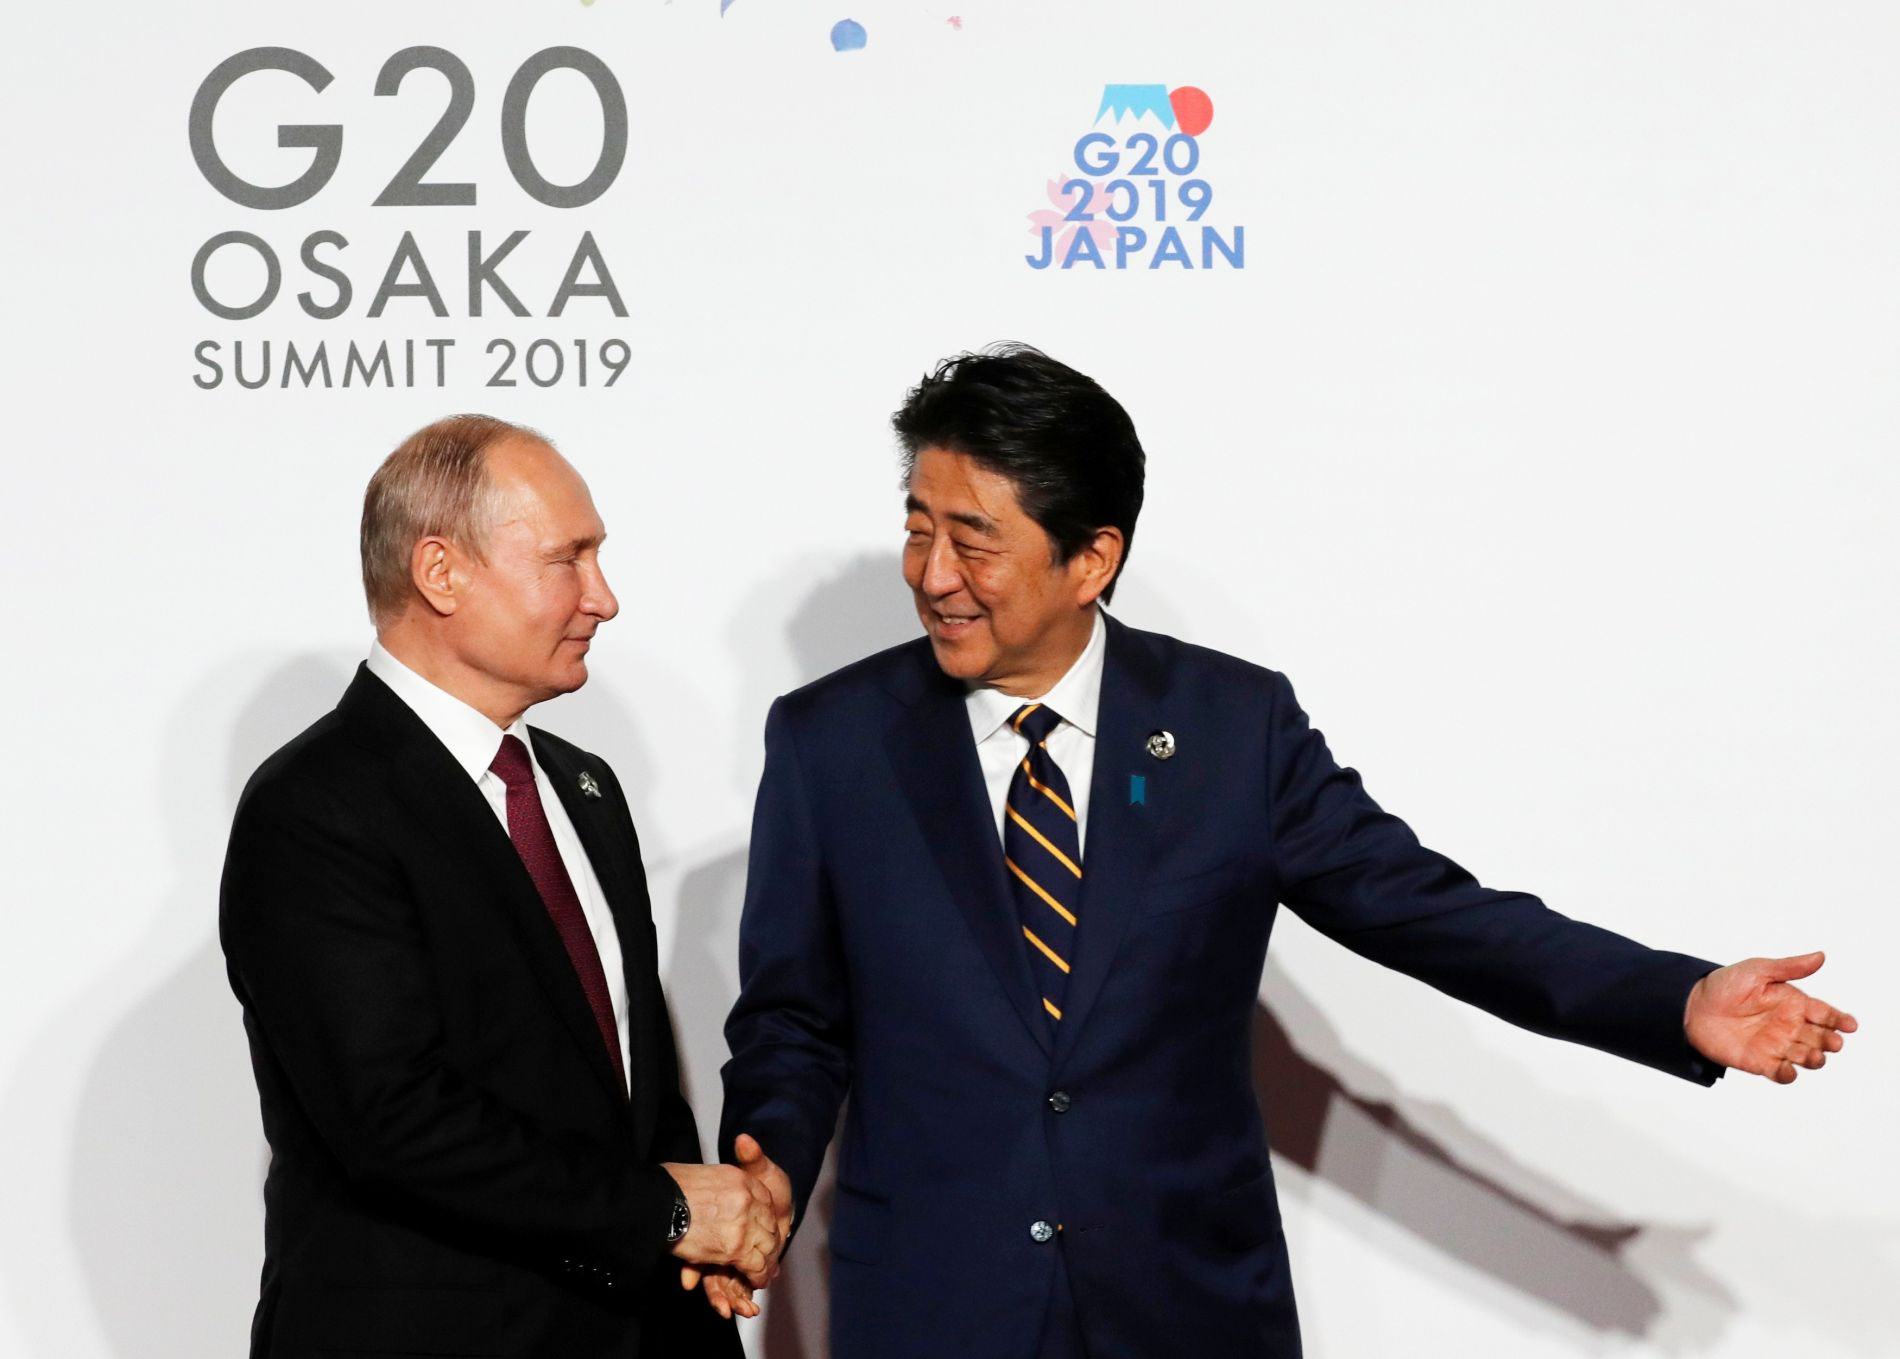 Russian President Vladimir Putin is welcomed by Japanese Prime Minister Shinzo Abe upon his arrival for a welcome and family photo session at G20 leaders summit in Osaka